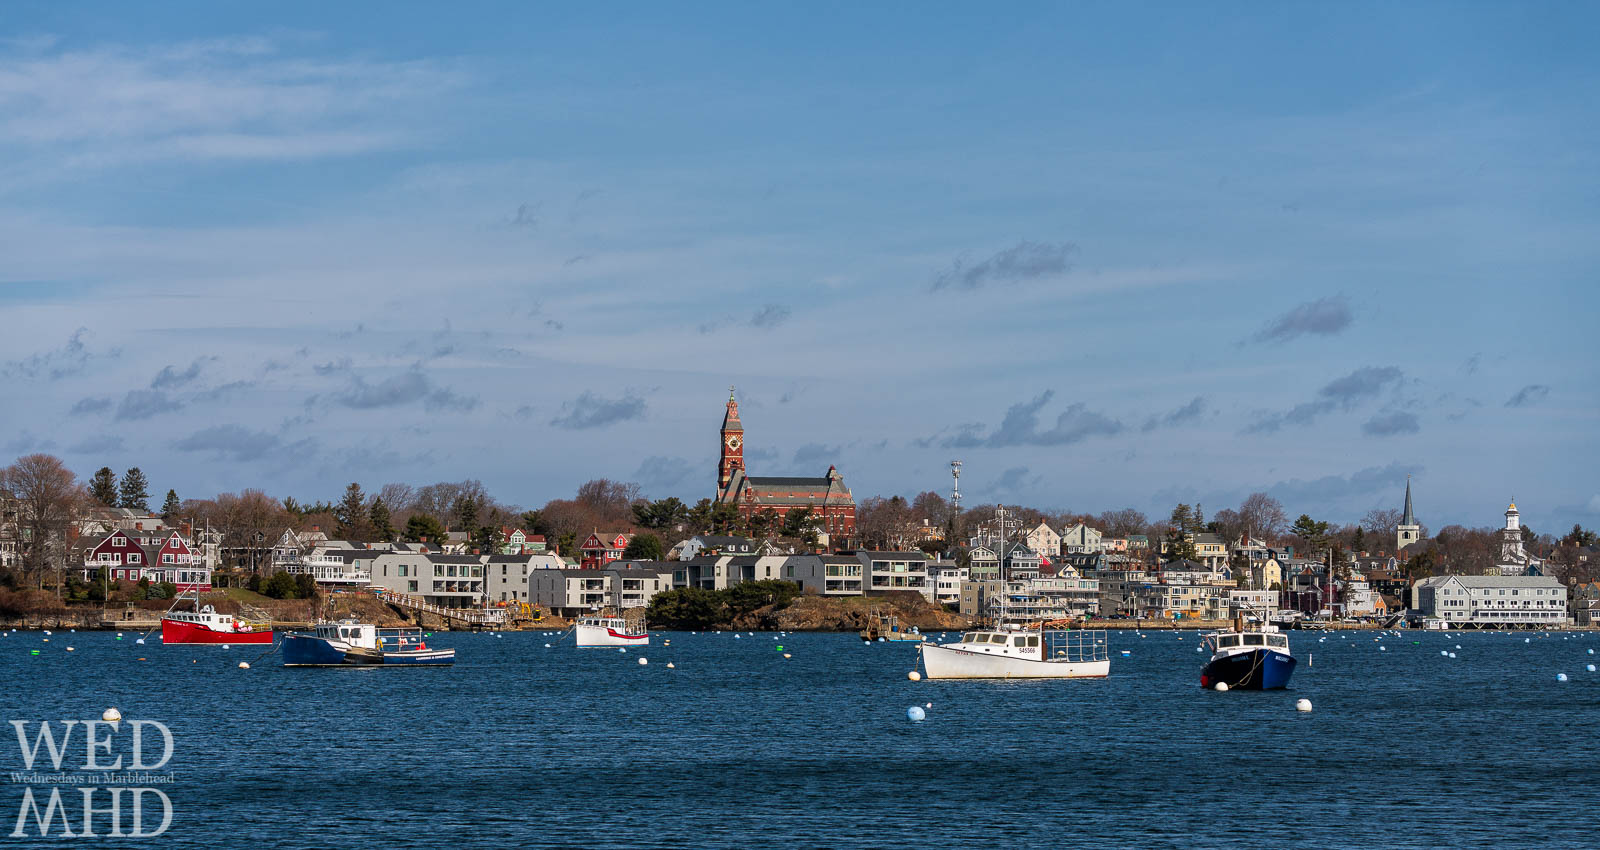 Five working boats fill the otherwise empty moorings in Marblehead Harbor